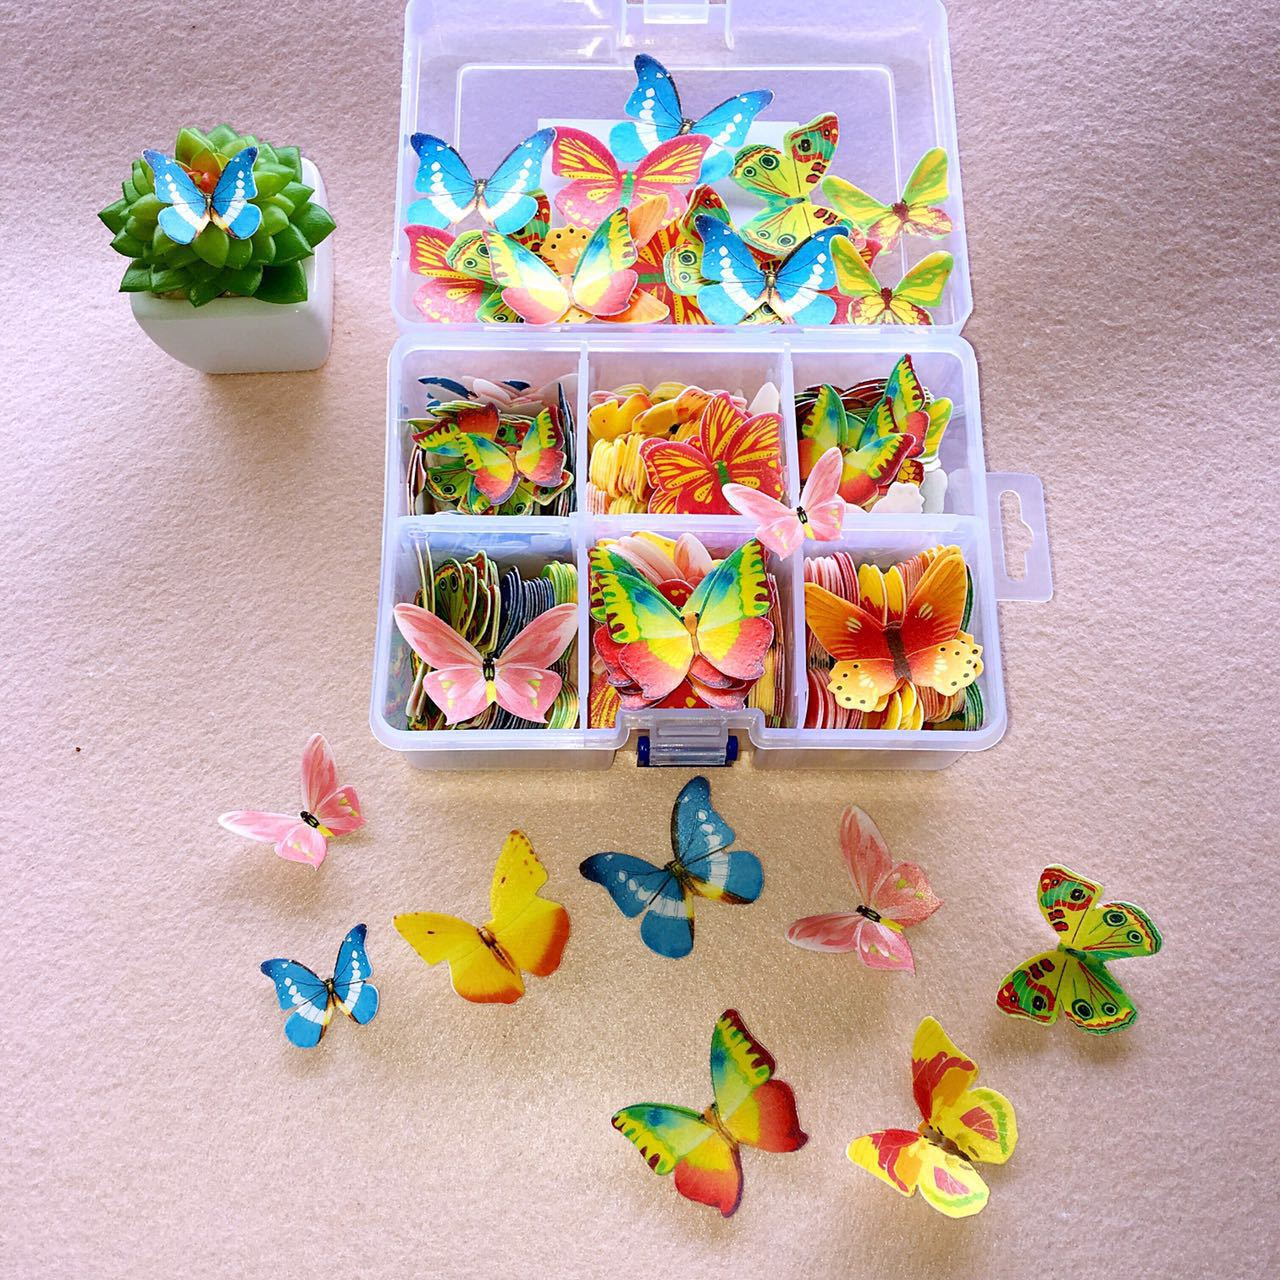 100pcs Mixed Butterfly <font><b>flowers</b></font> Edible Glutinous Wafer Rice Paper <font><b>Cake</b></font> Cupcake Toppers <font><b>Cake</b></font> <font><b>Decoration</b></font> Birthday Wedding <font><b>Cake</b></font> <font><b>Tool</b></font> image